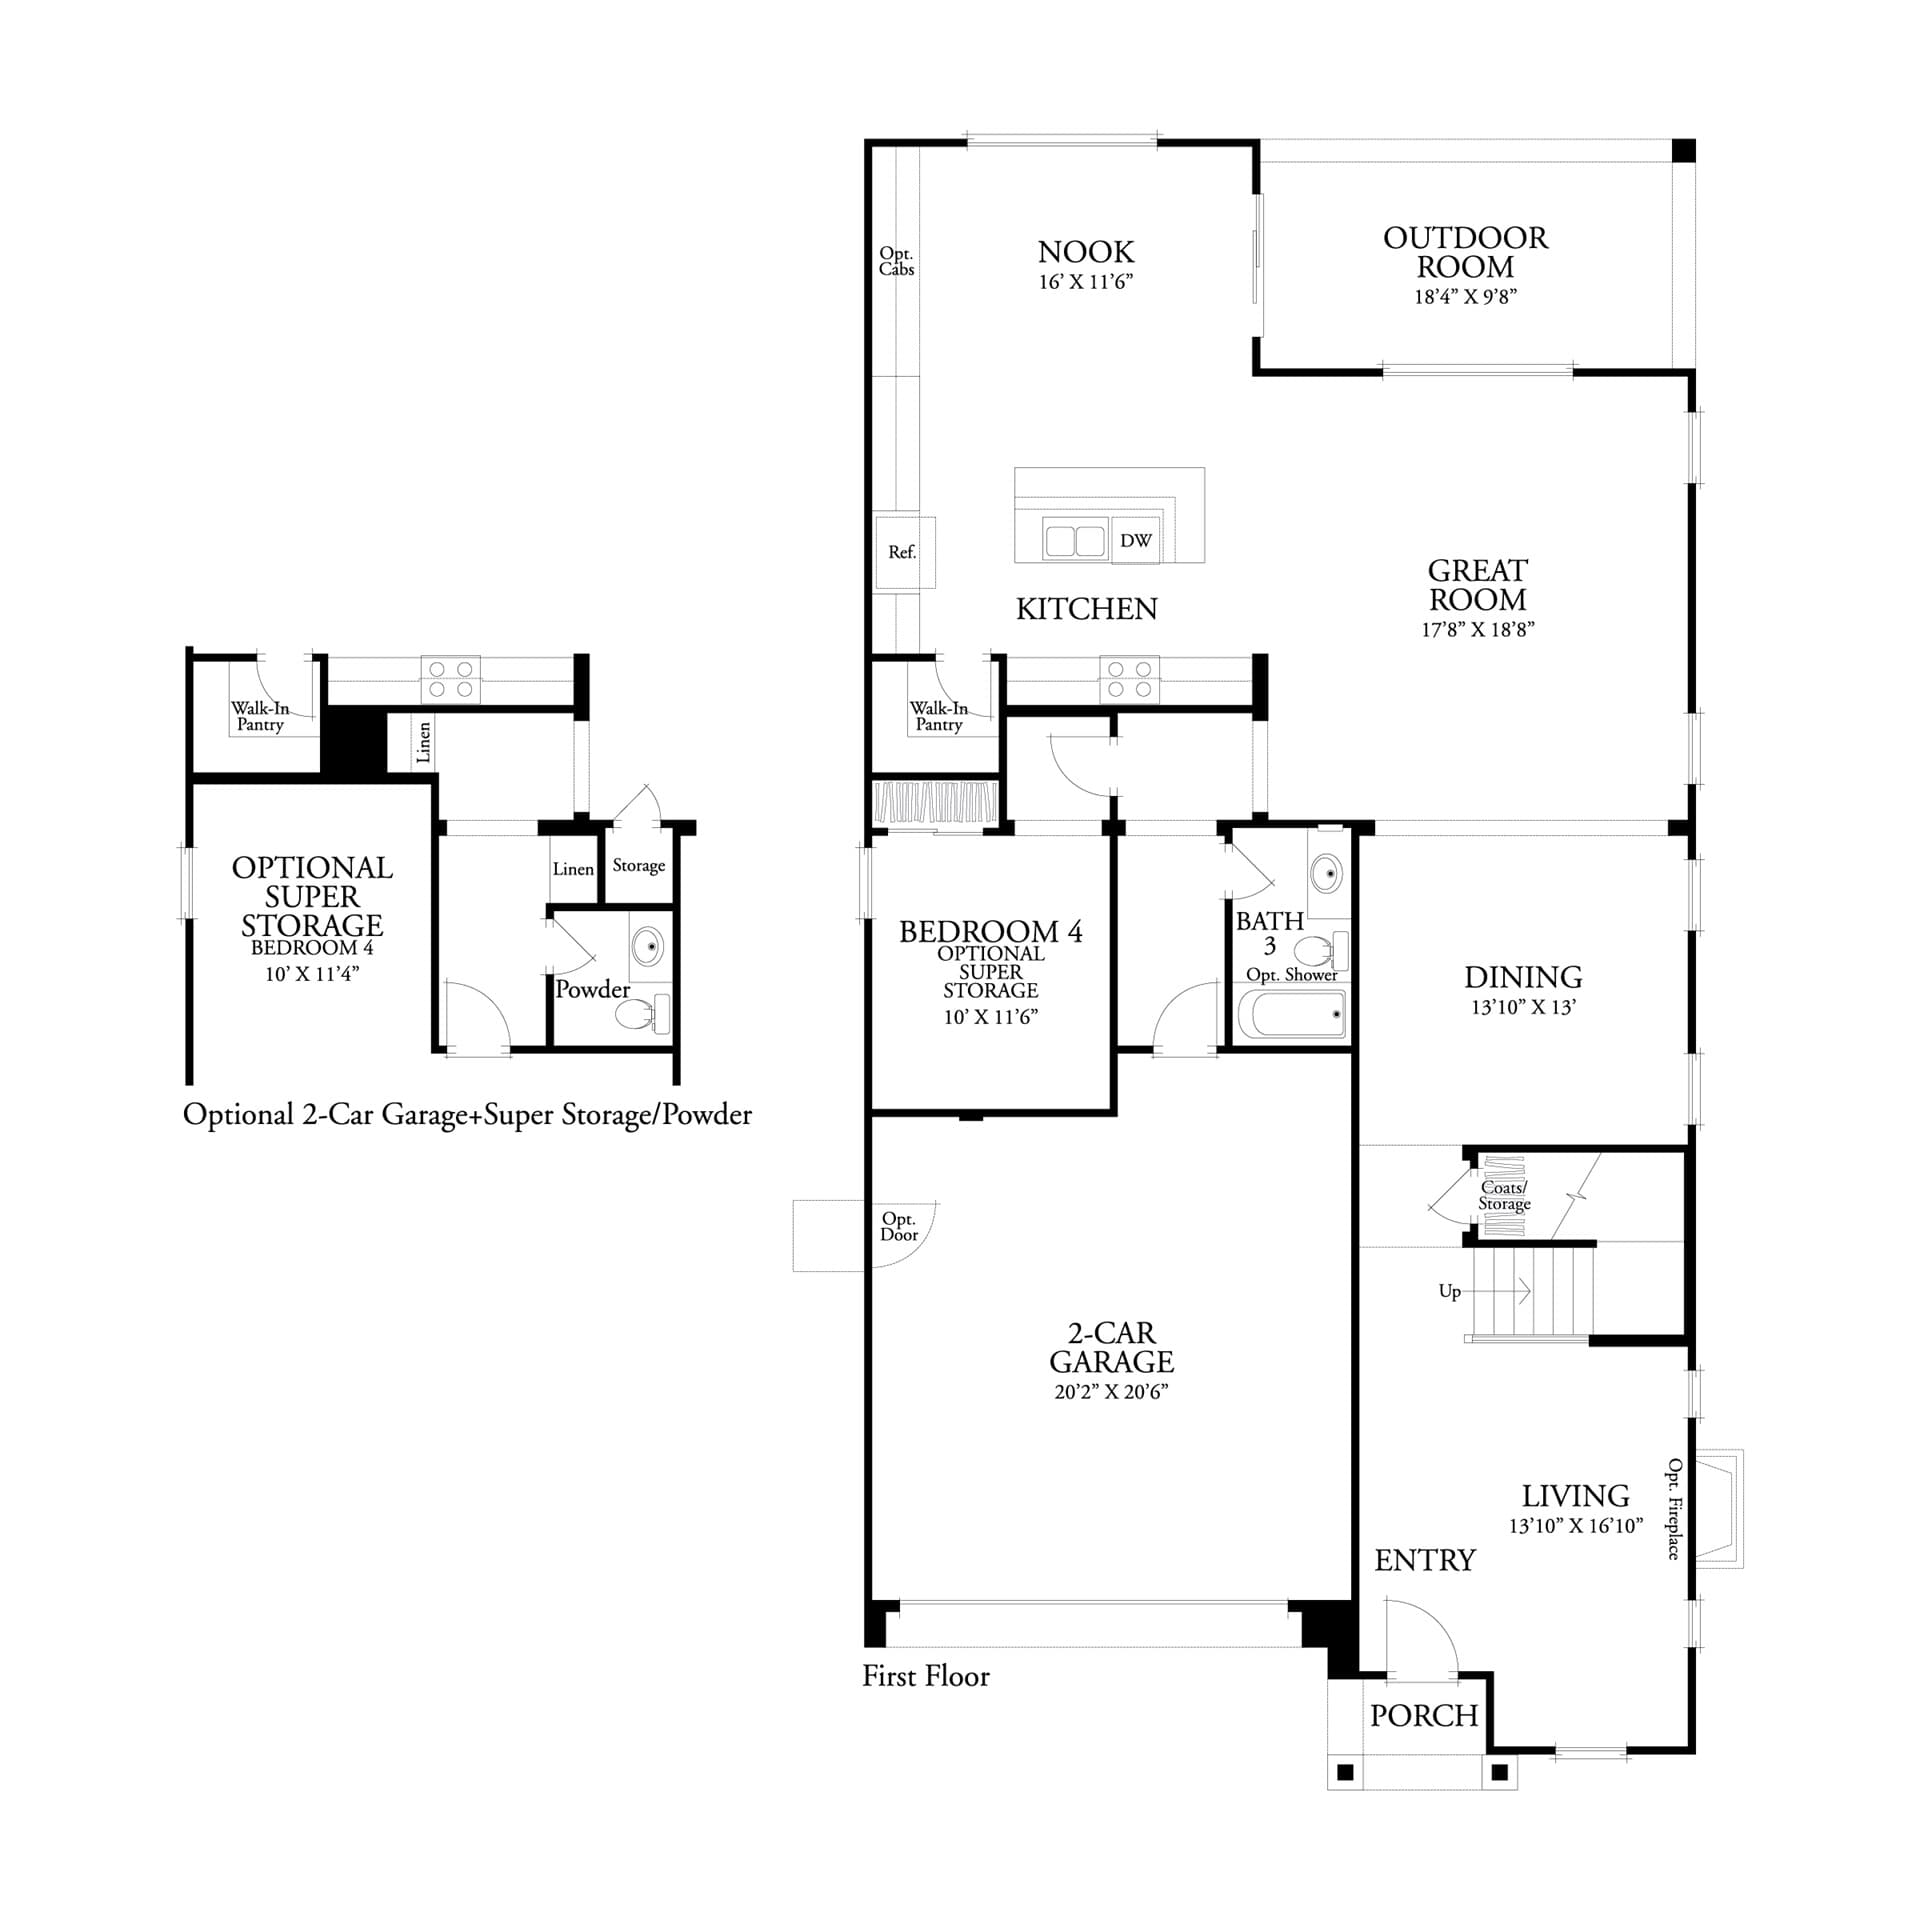 First floor residence 3 floor plan | Marigold at New Haven in Ontario Ranch, CA | Brookfield Residential